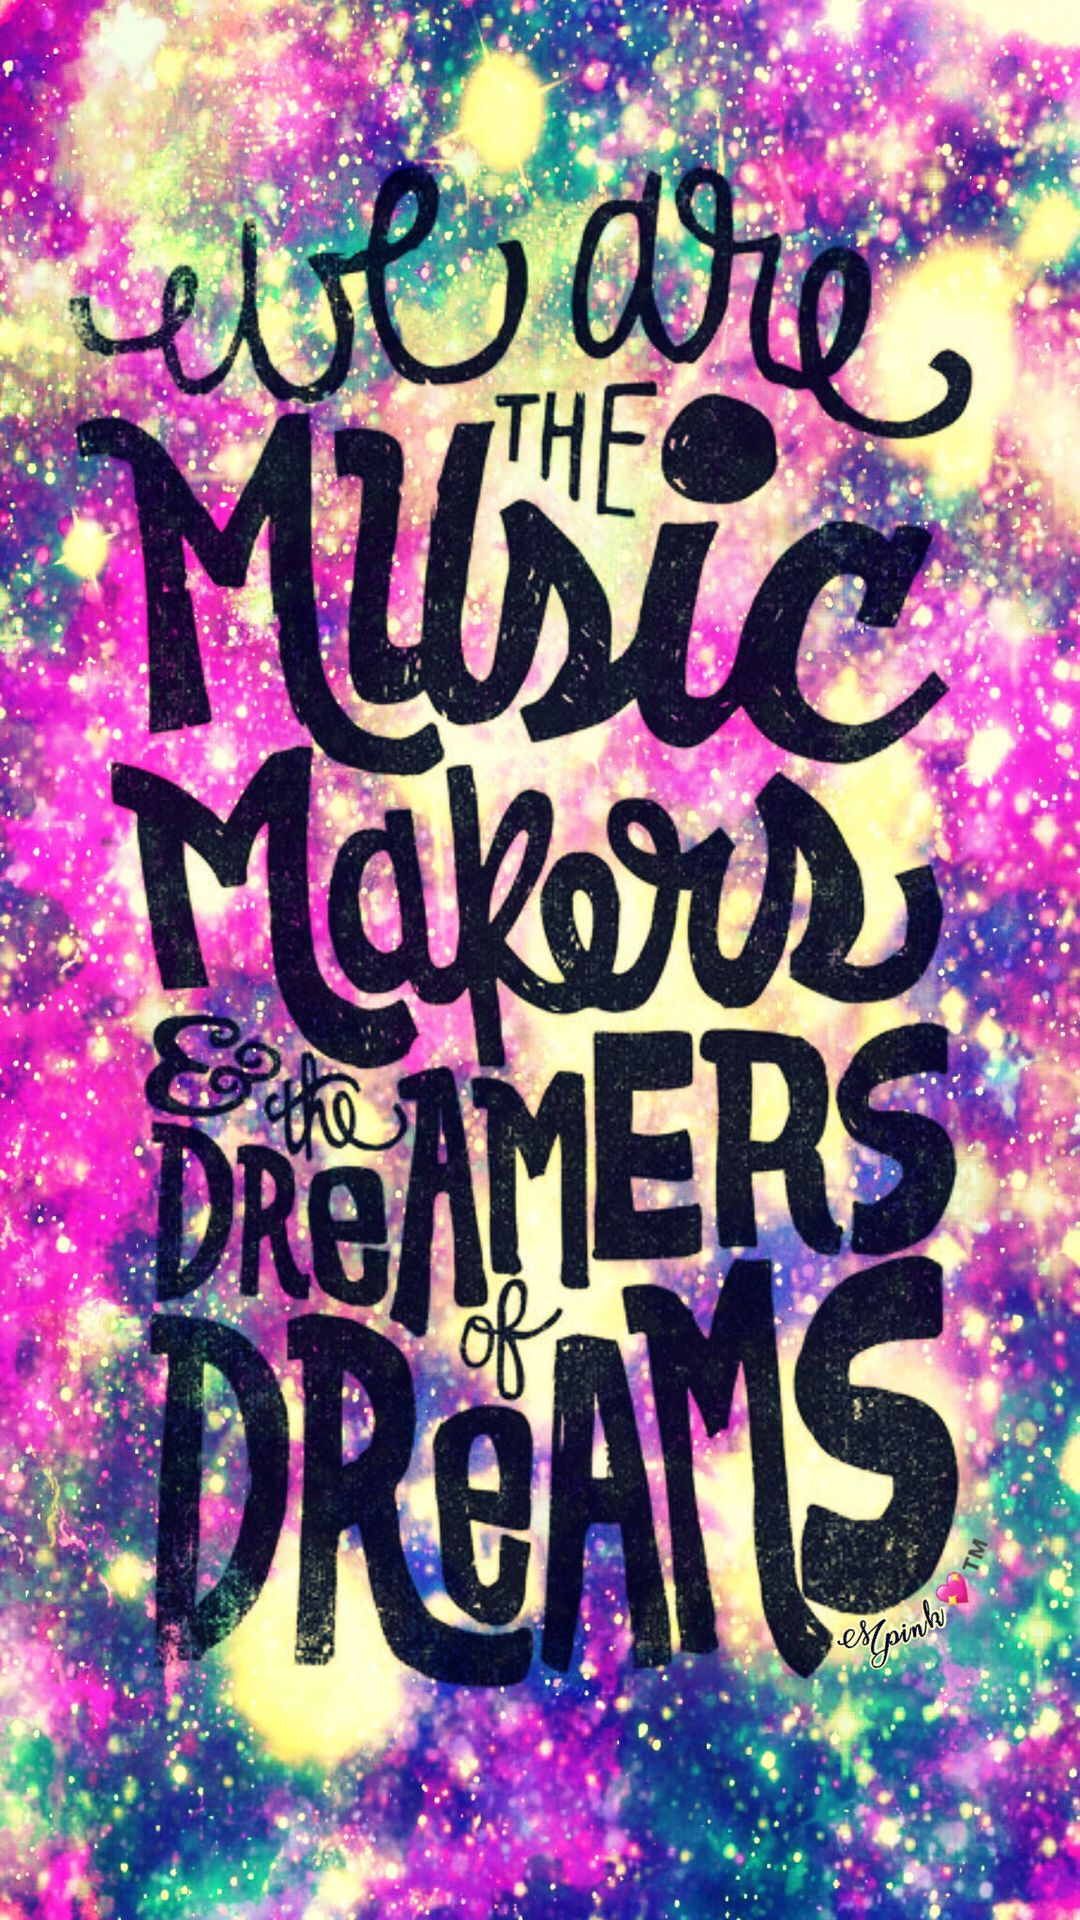 We Are The Music Makers Galaxy Wallpaper Androidwallpaper Iphonewallpaper Wallpaper Galaxy Sparkle Glitt Galaxy Wallpaper Quote Backgrounds Galaxy Quotes